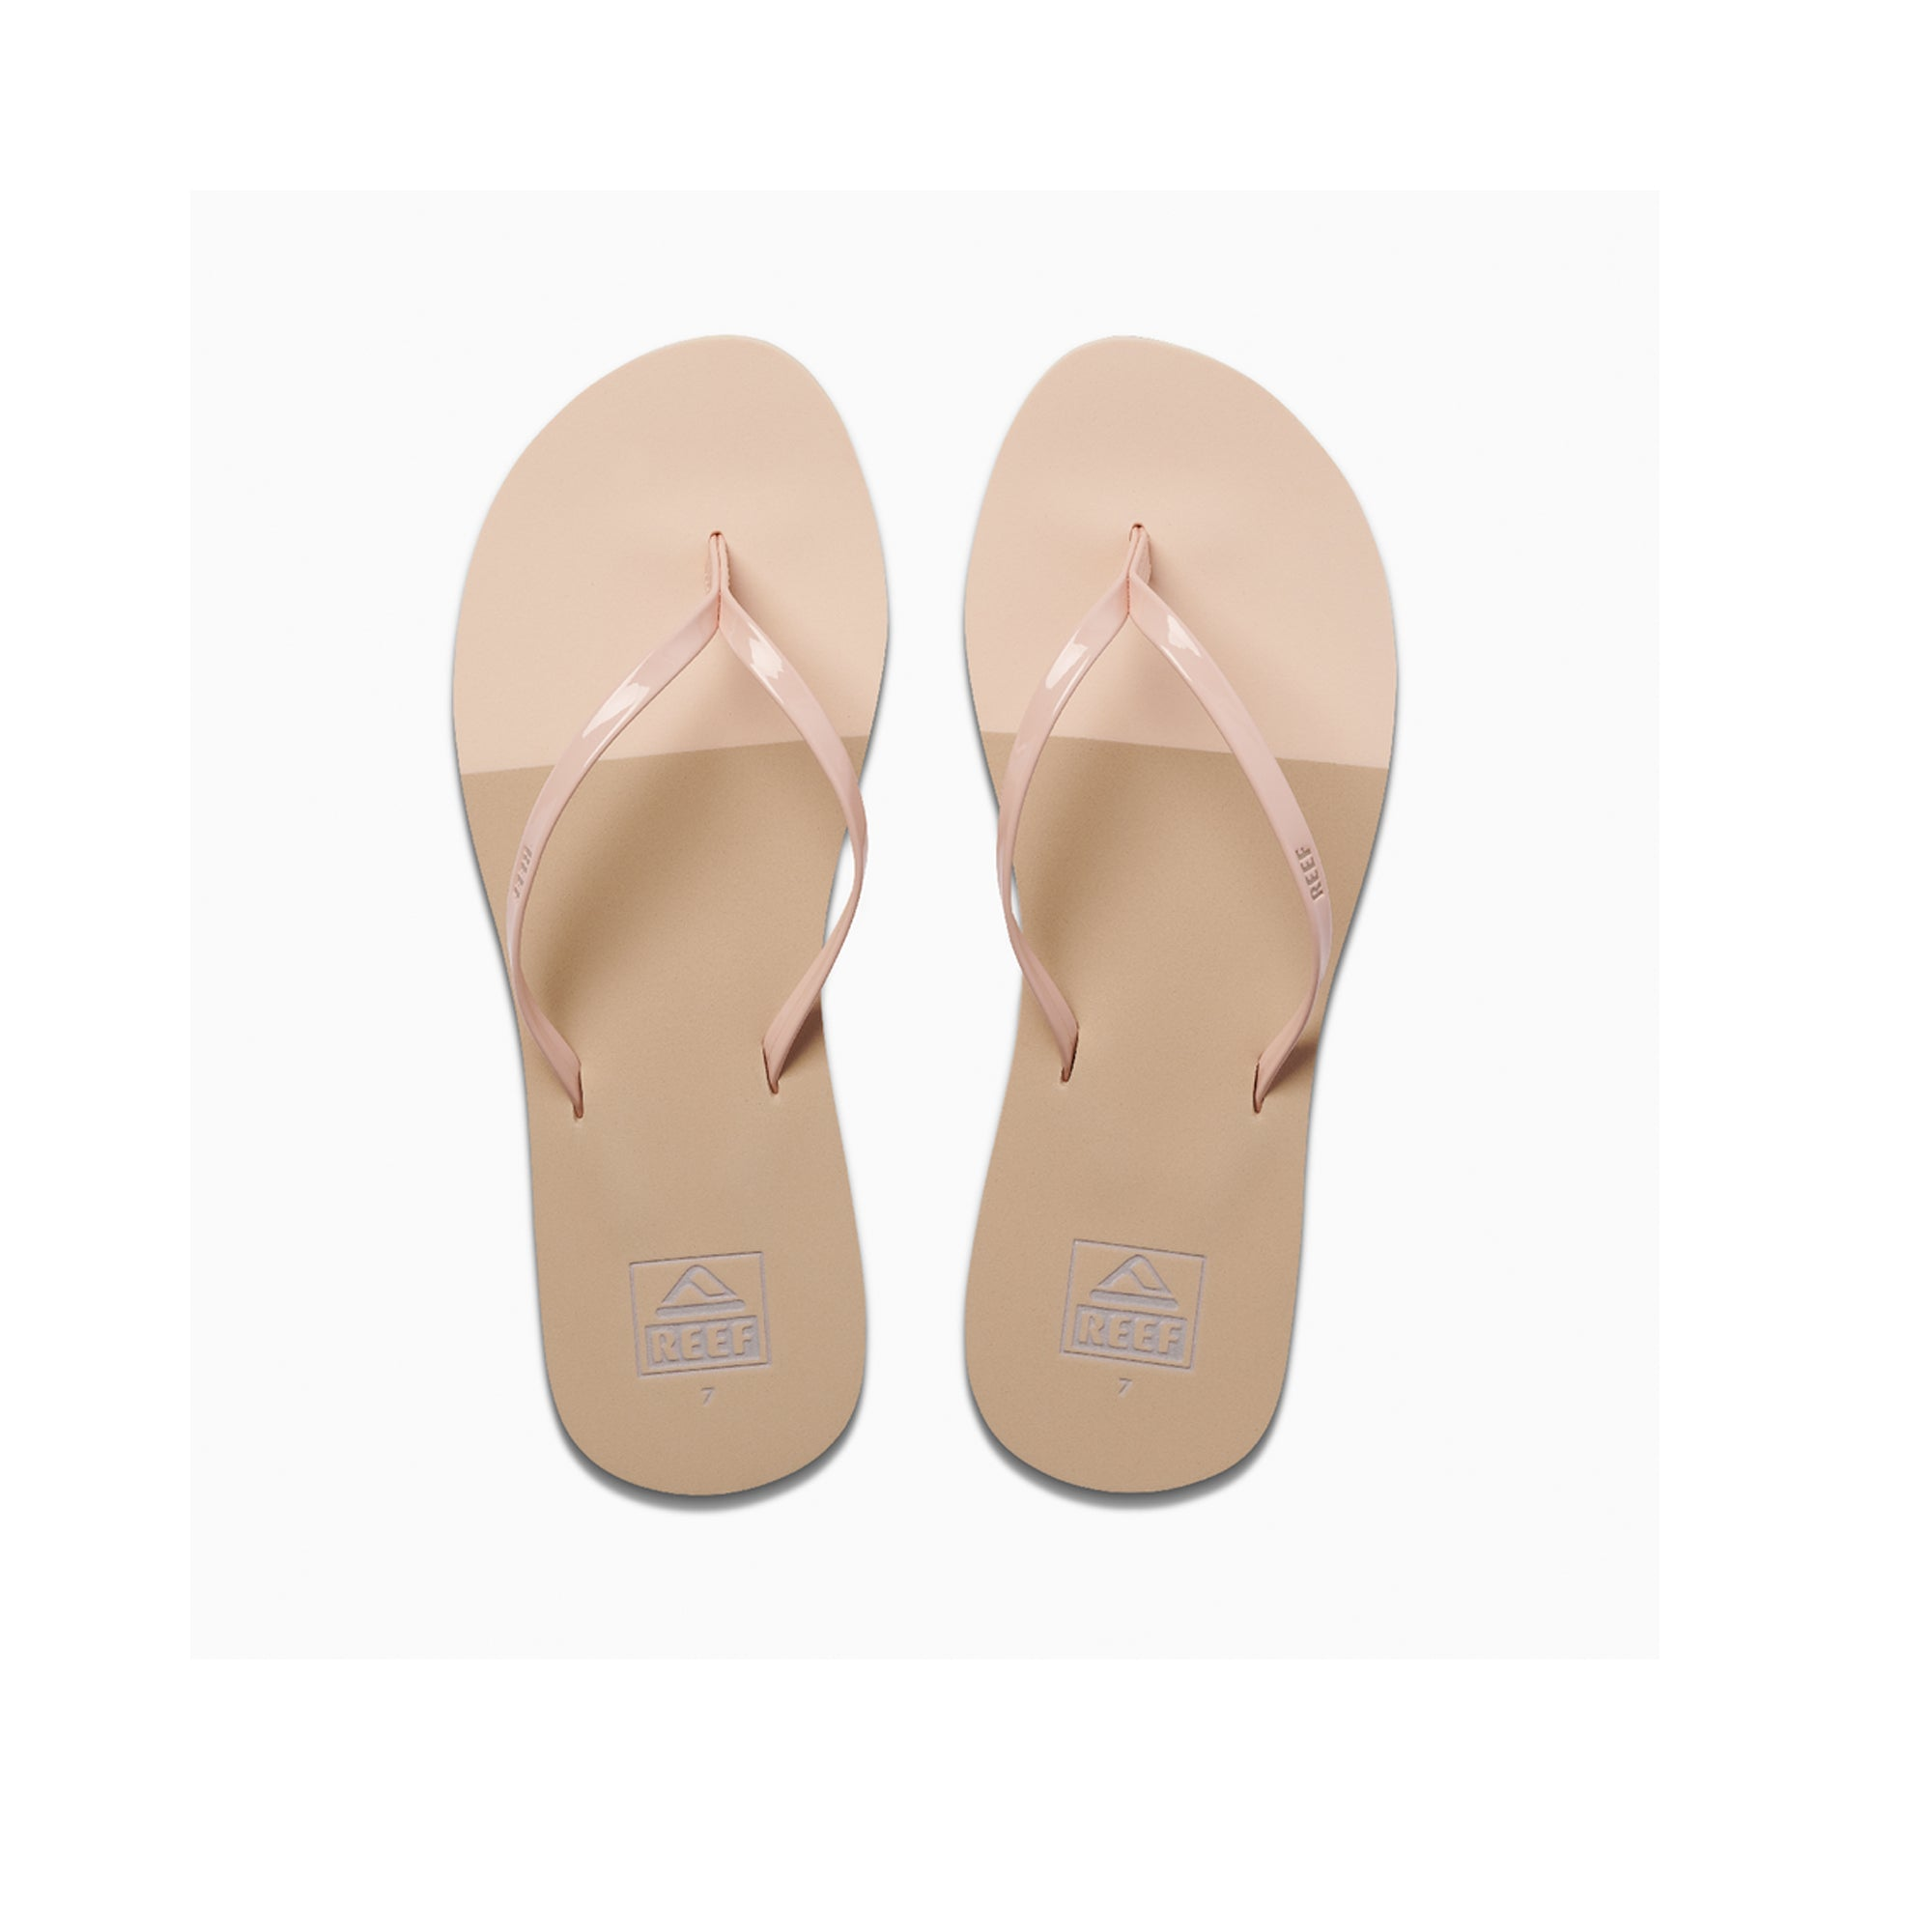 Reef Bliss Toe Dip Women's Sandals